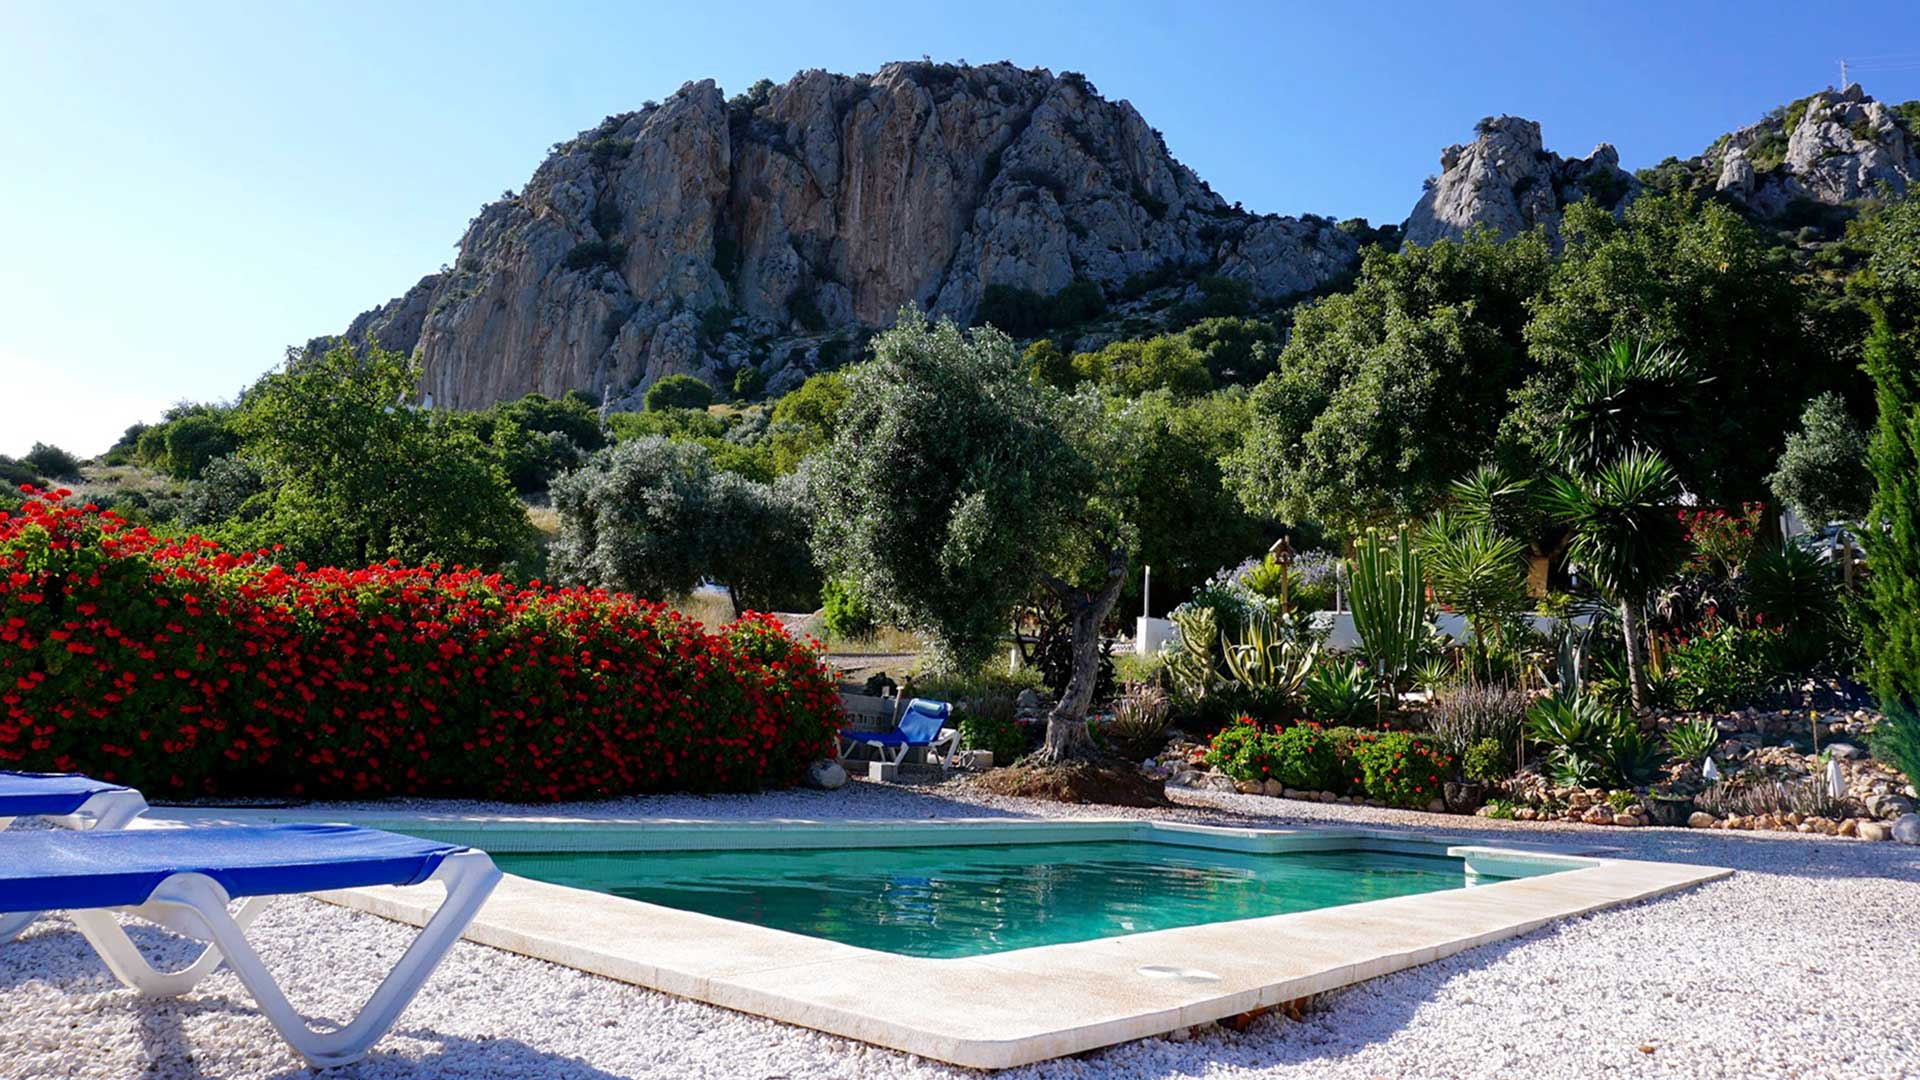 Olive Branch El Chorro - Camping, Bunkhouse and En suite accommodation in el chorro spain Olive Branch El Chorro malaga spain